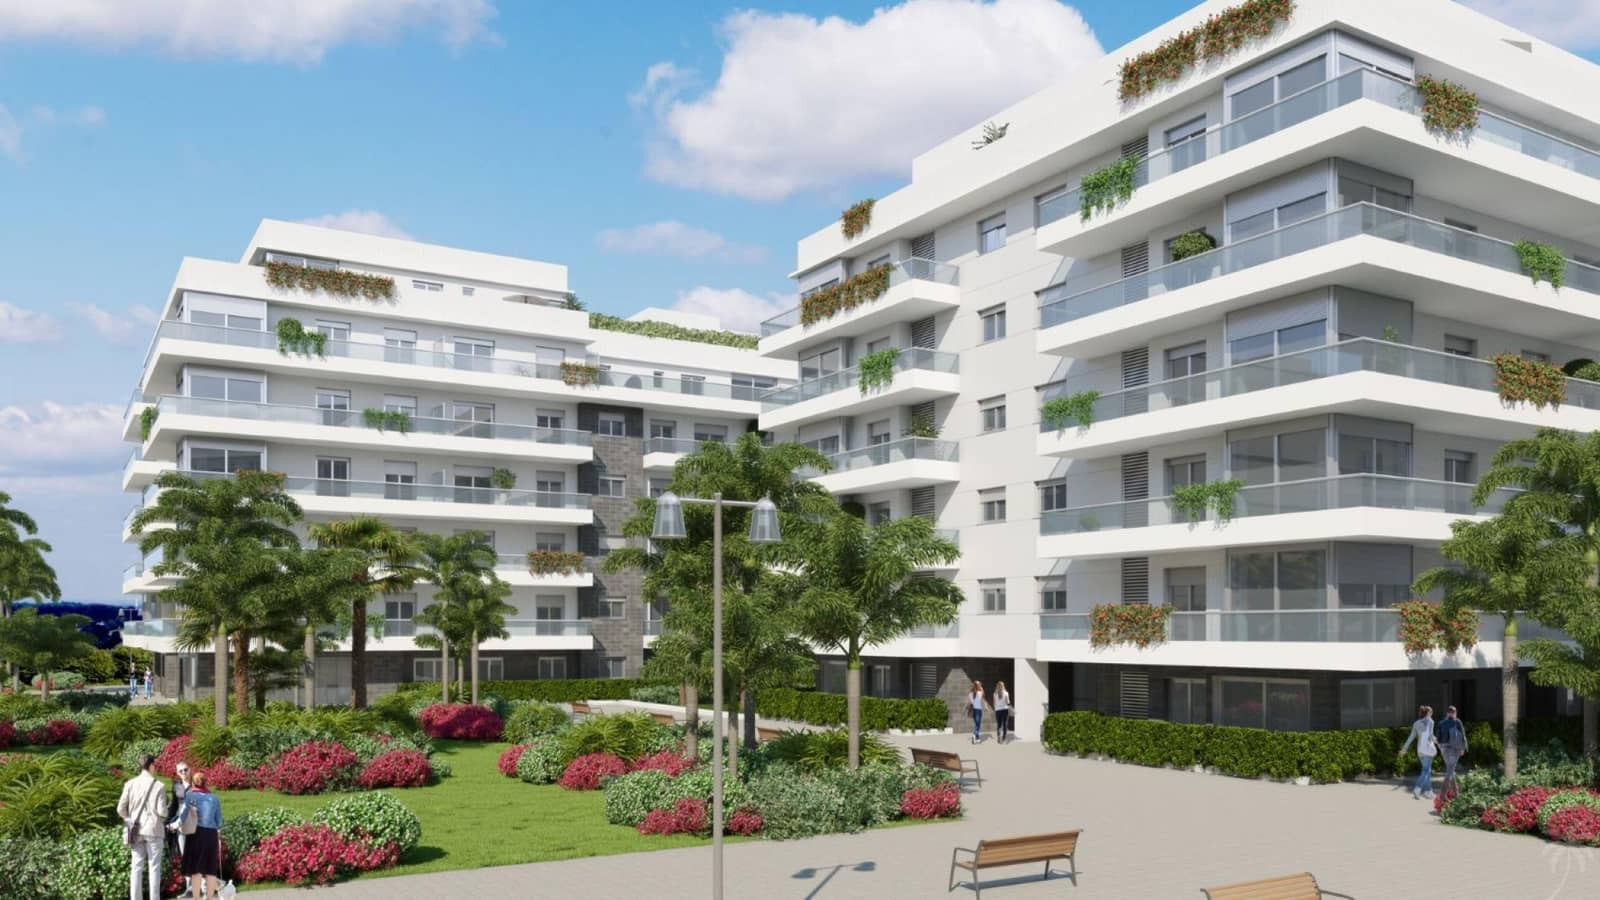 3 bedroom Apartment for sale in Marbella with pool - € 225,500 (Ref: 4902773)